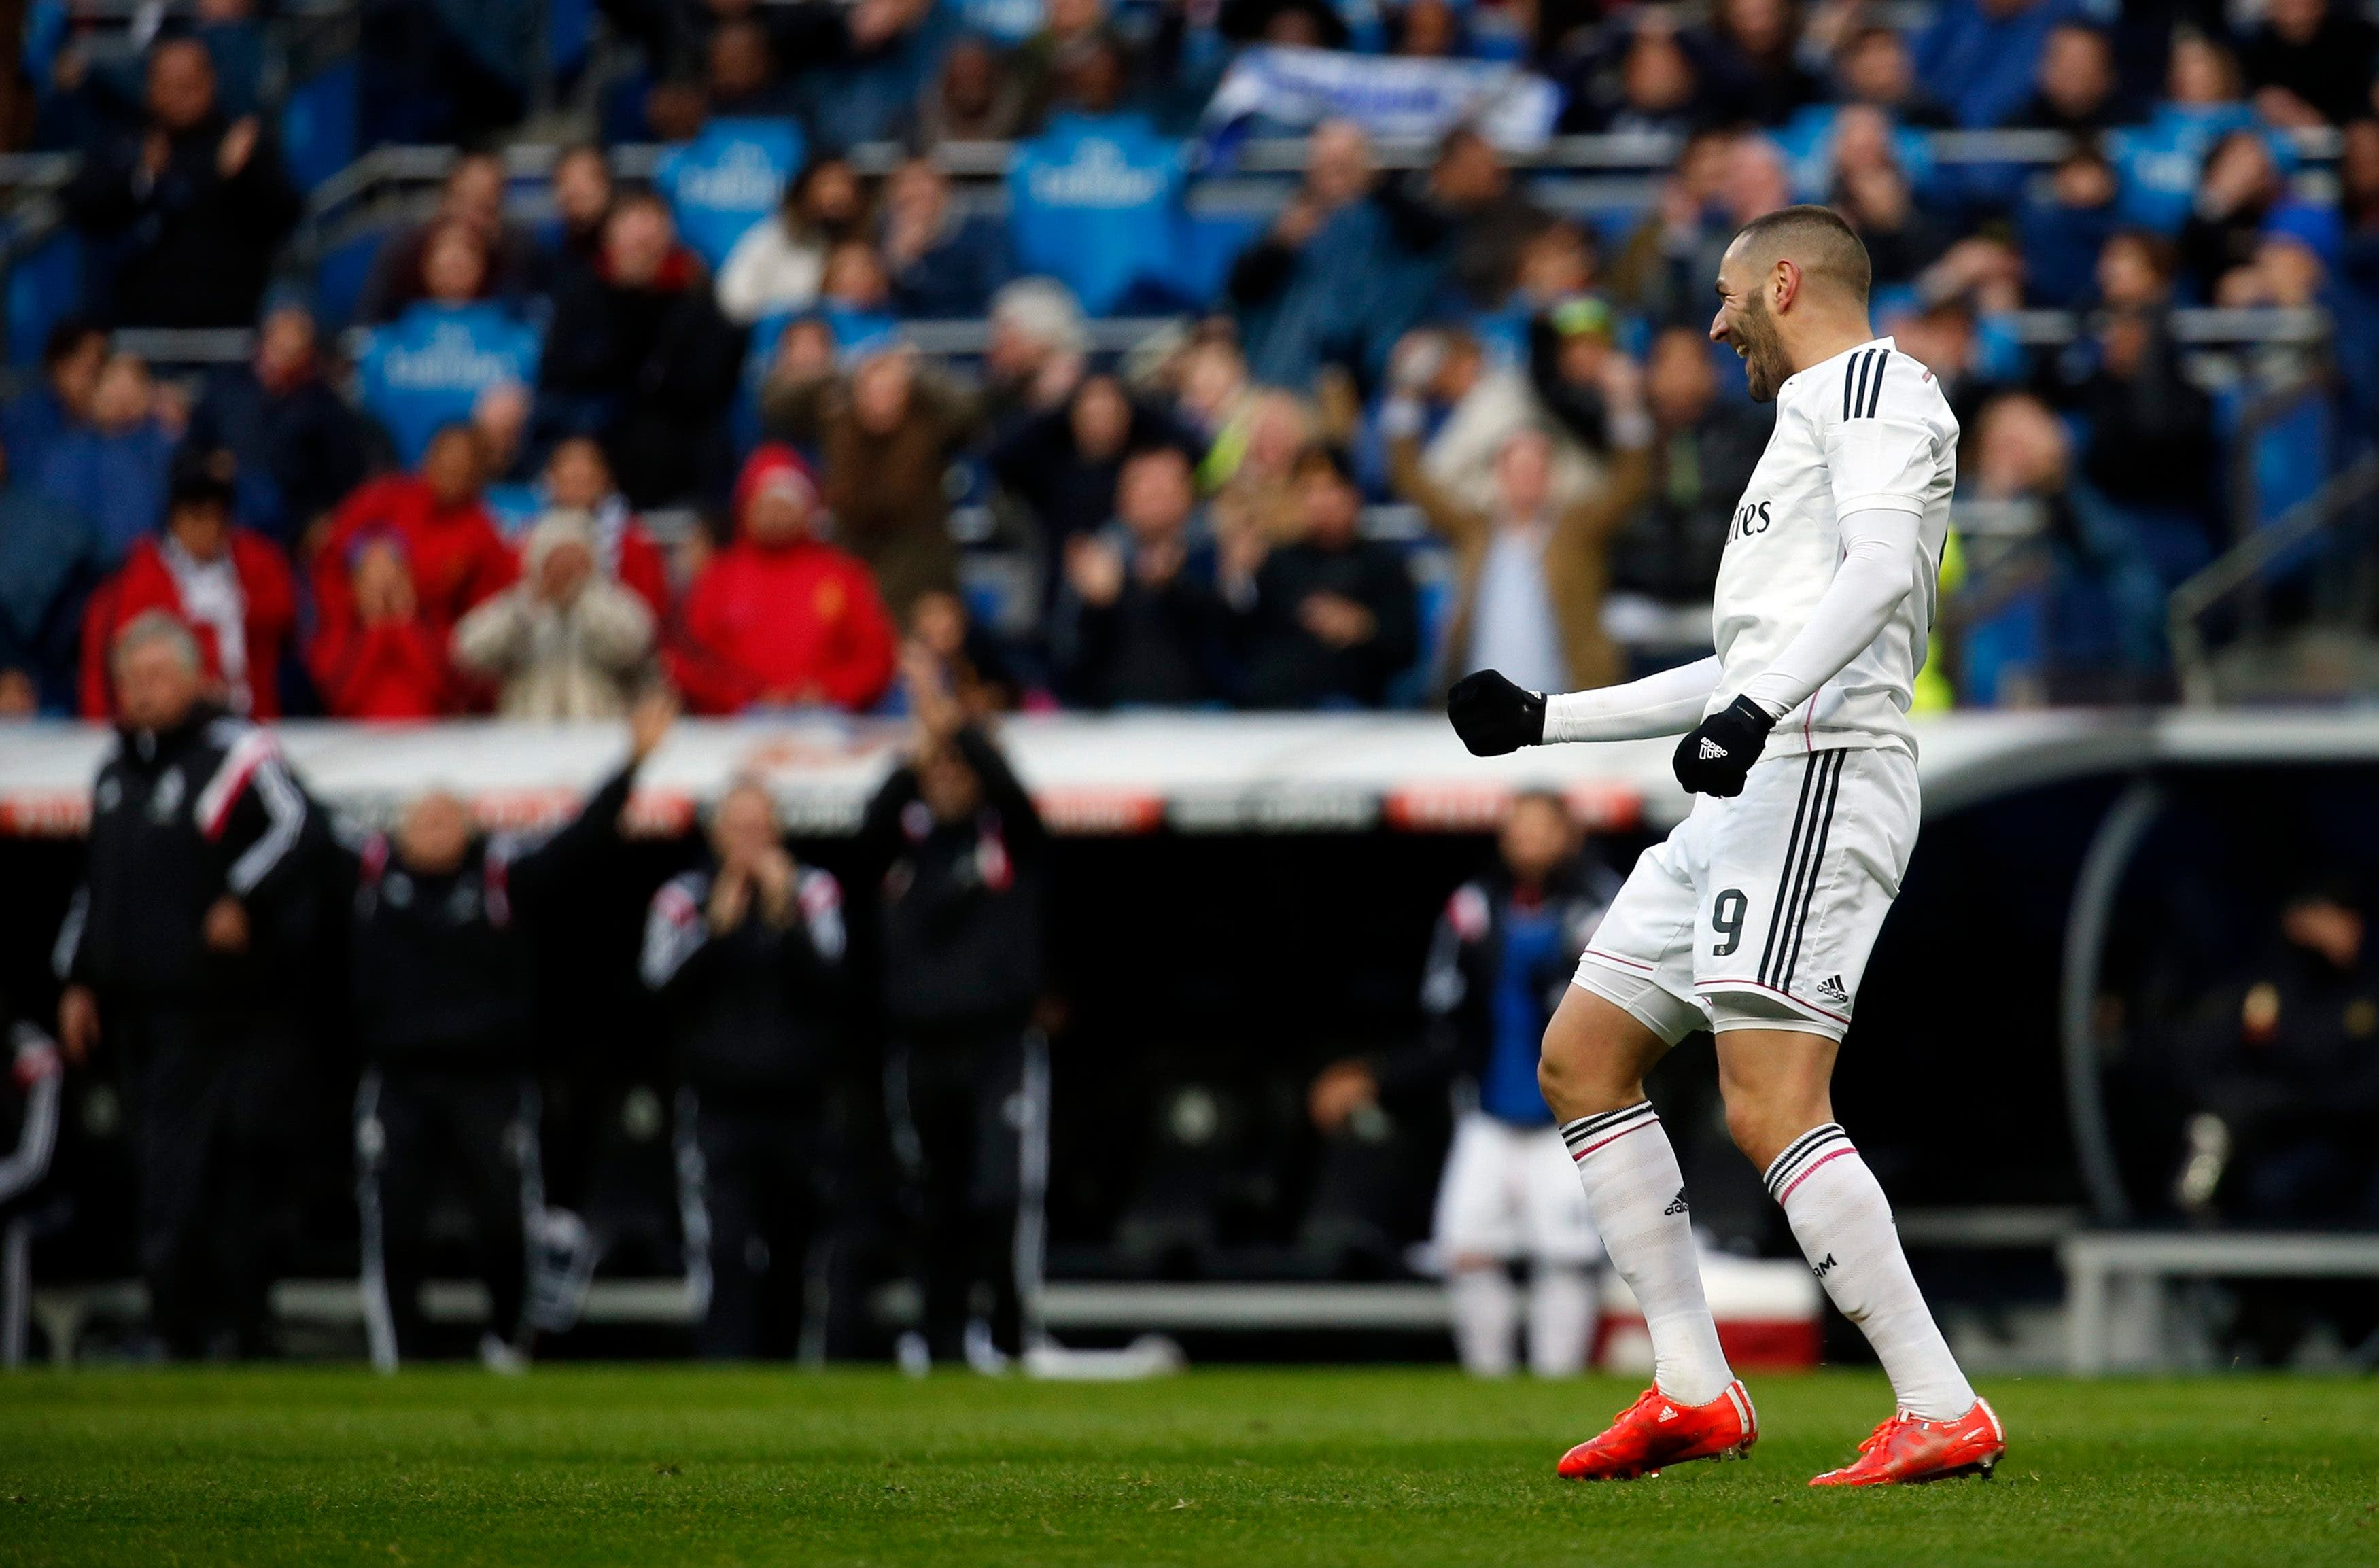 Real Madrid's Karim Benzema celebrates his goal against Real Sociedad during their Spanish first division soccer match at Santiago Bernabeu stadium in Madrid, Jan. 31, 2015.  (Reuters)